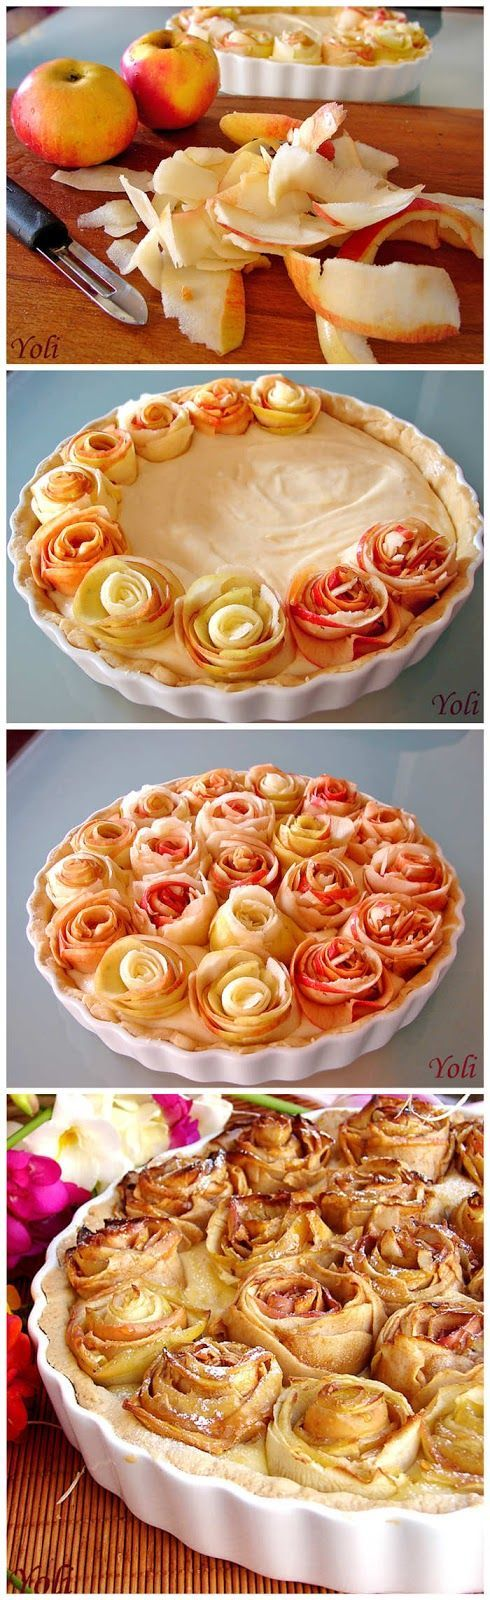 apple pie with apple roses the most beautiful pie EVER